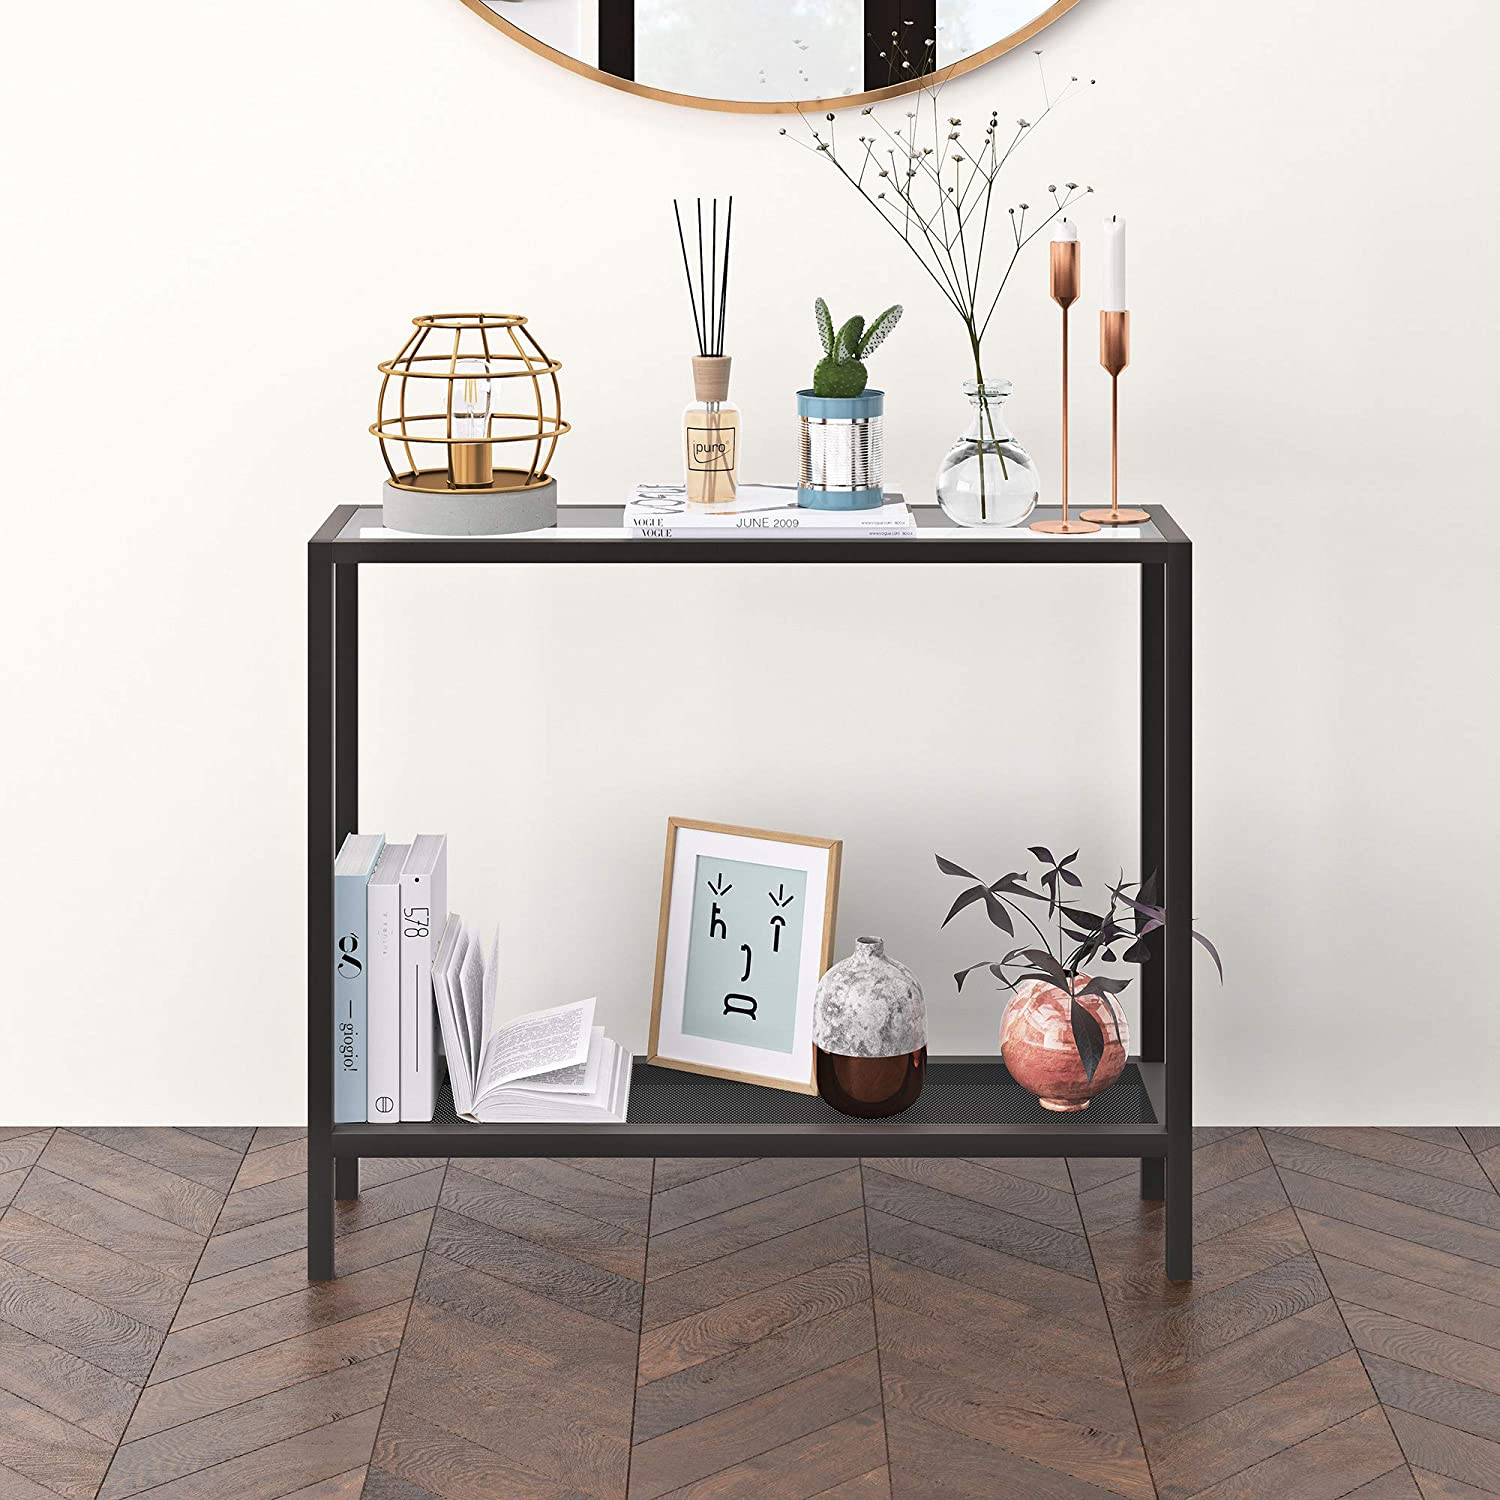 Henn&Hart Industrial Metal Perforated Mesh Shelf Console table